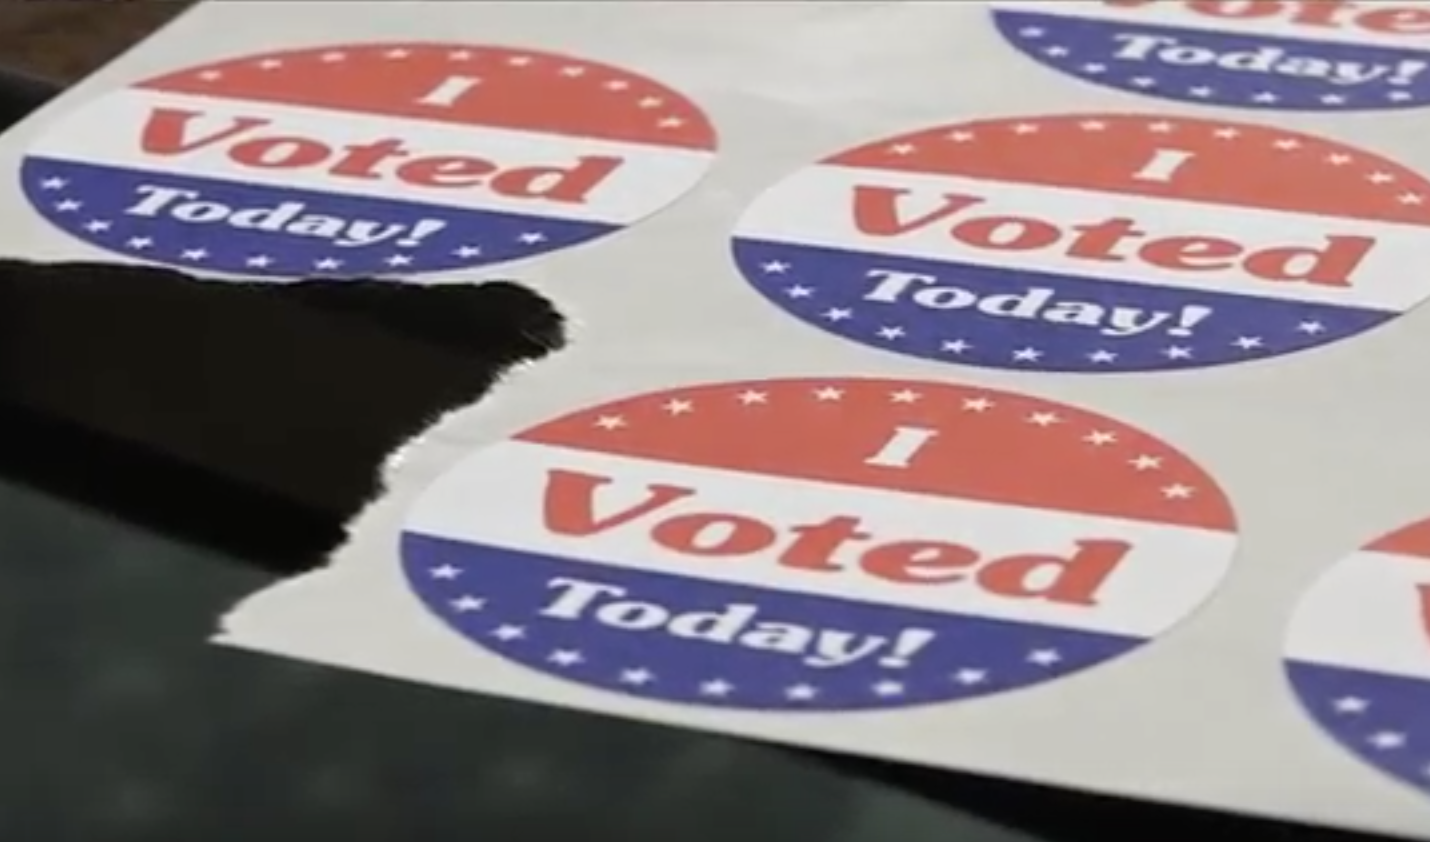 """Picture of a sheet of stickers that say, """"I voted today!"""". The stickers have red, white, and blue colors."""